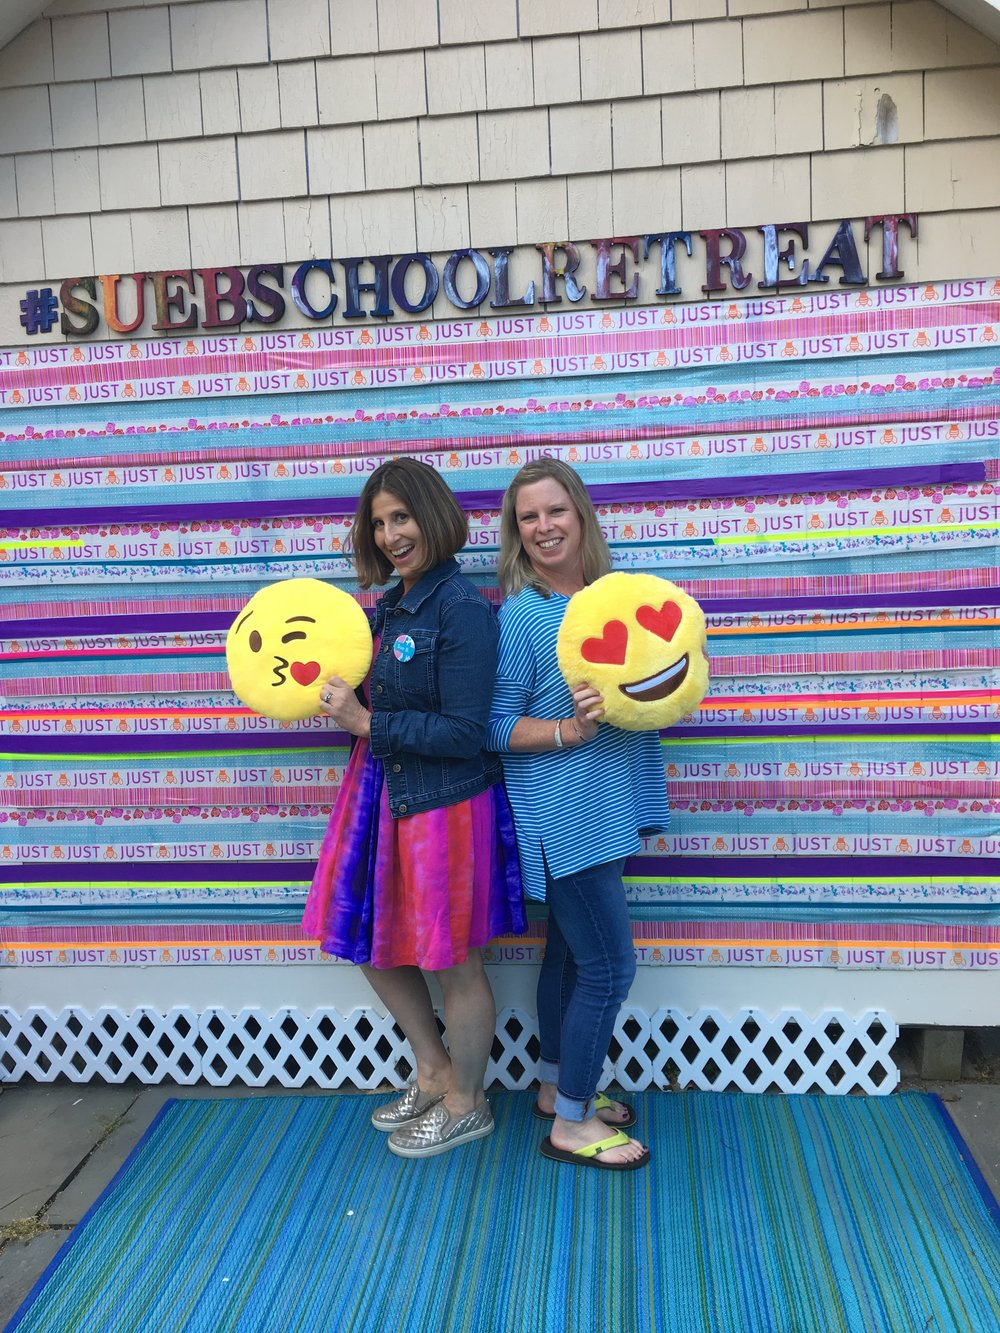 Having emoji fun with Sue B!